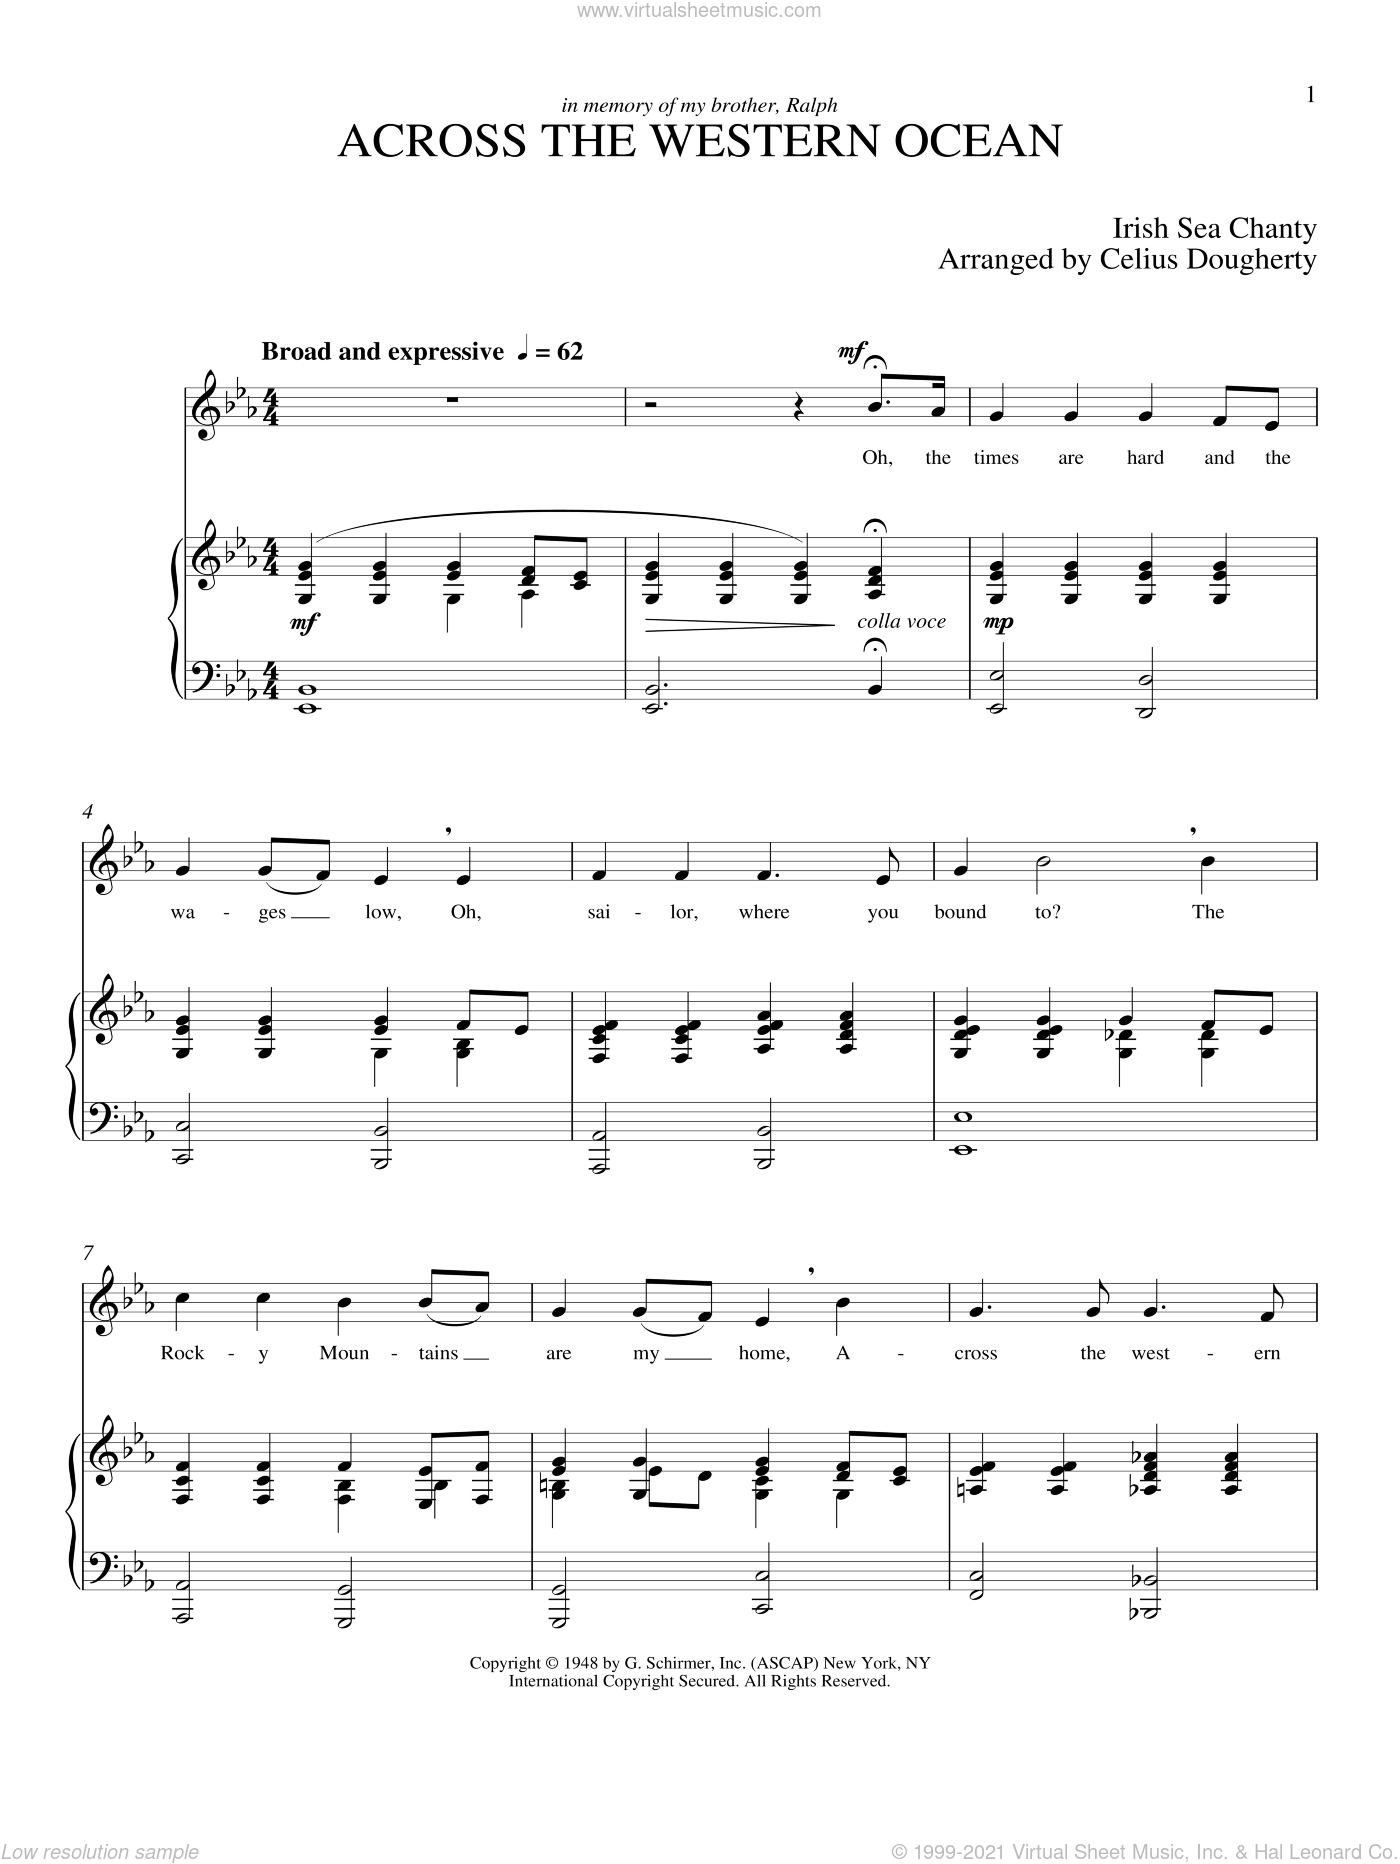 Across The Western Ocean (Five Sea Chanties, No. 3) sheet music for voice and piano (Tenor) by Celius Dougherty. Score Image Preview.